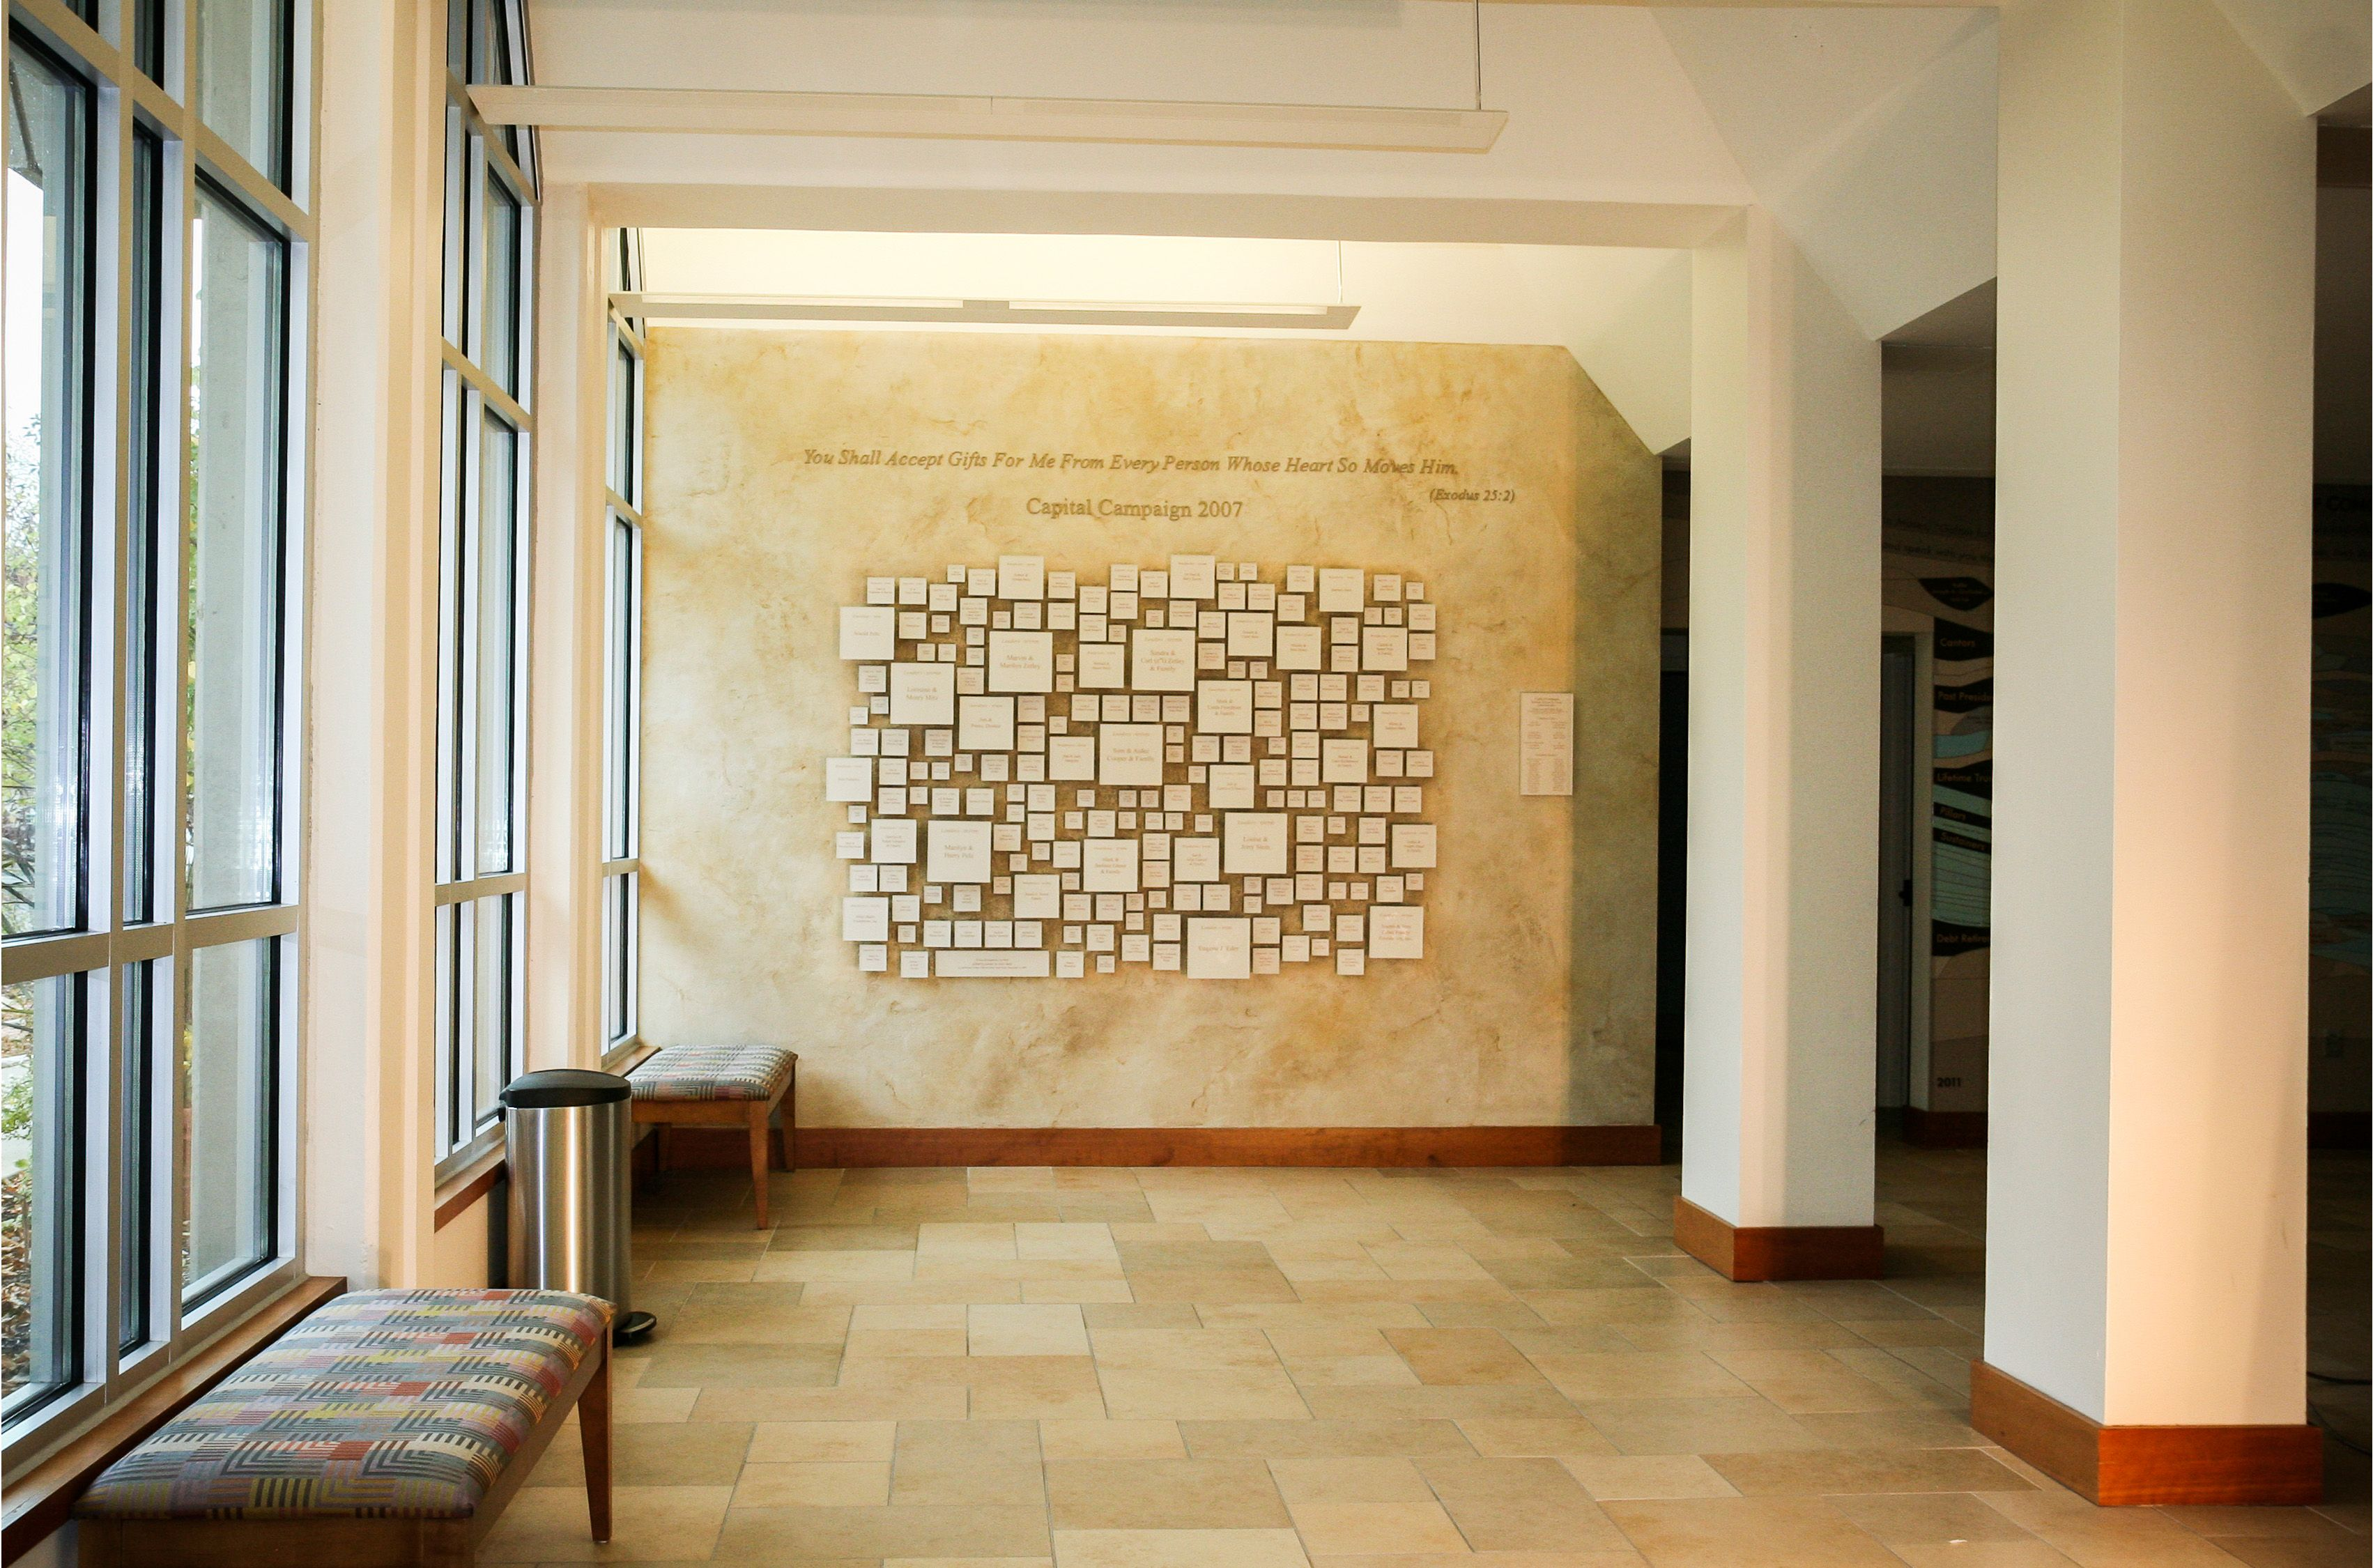 This donor wall for Beth Israel features frosted acrylic blocks with ...